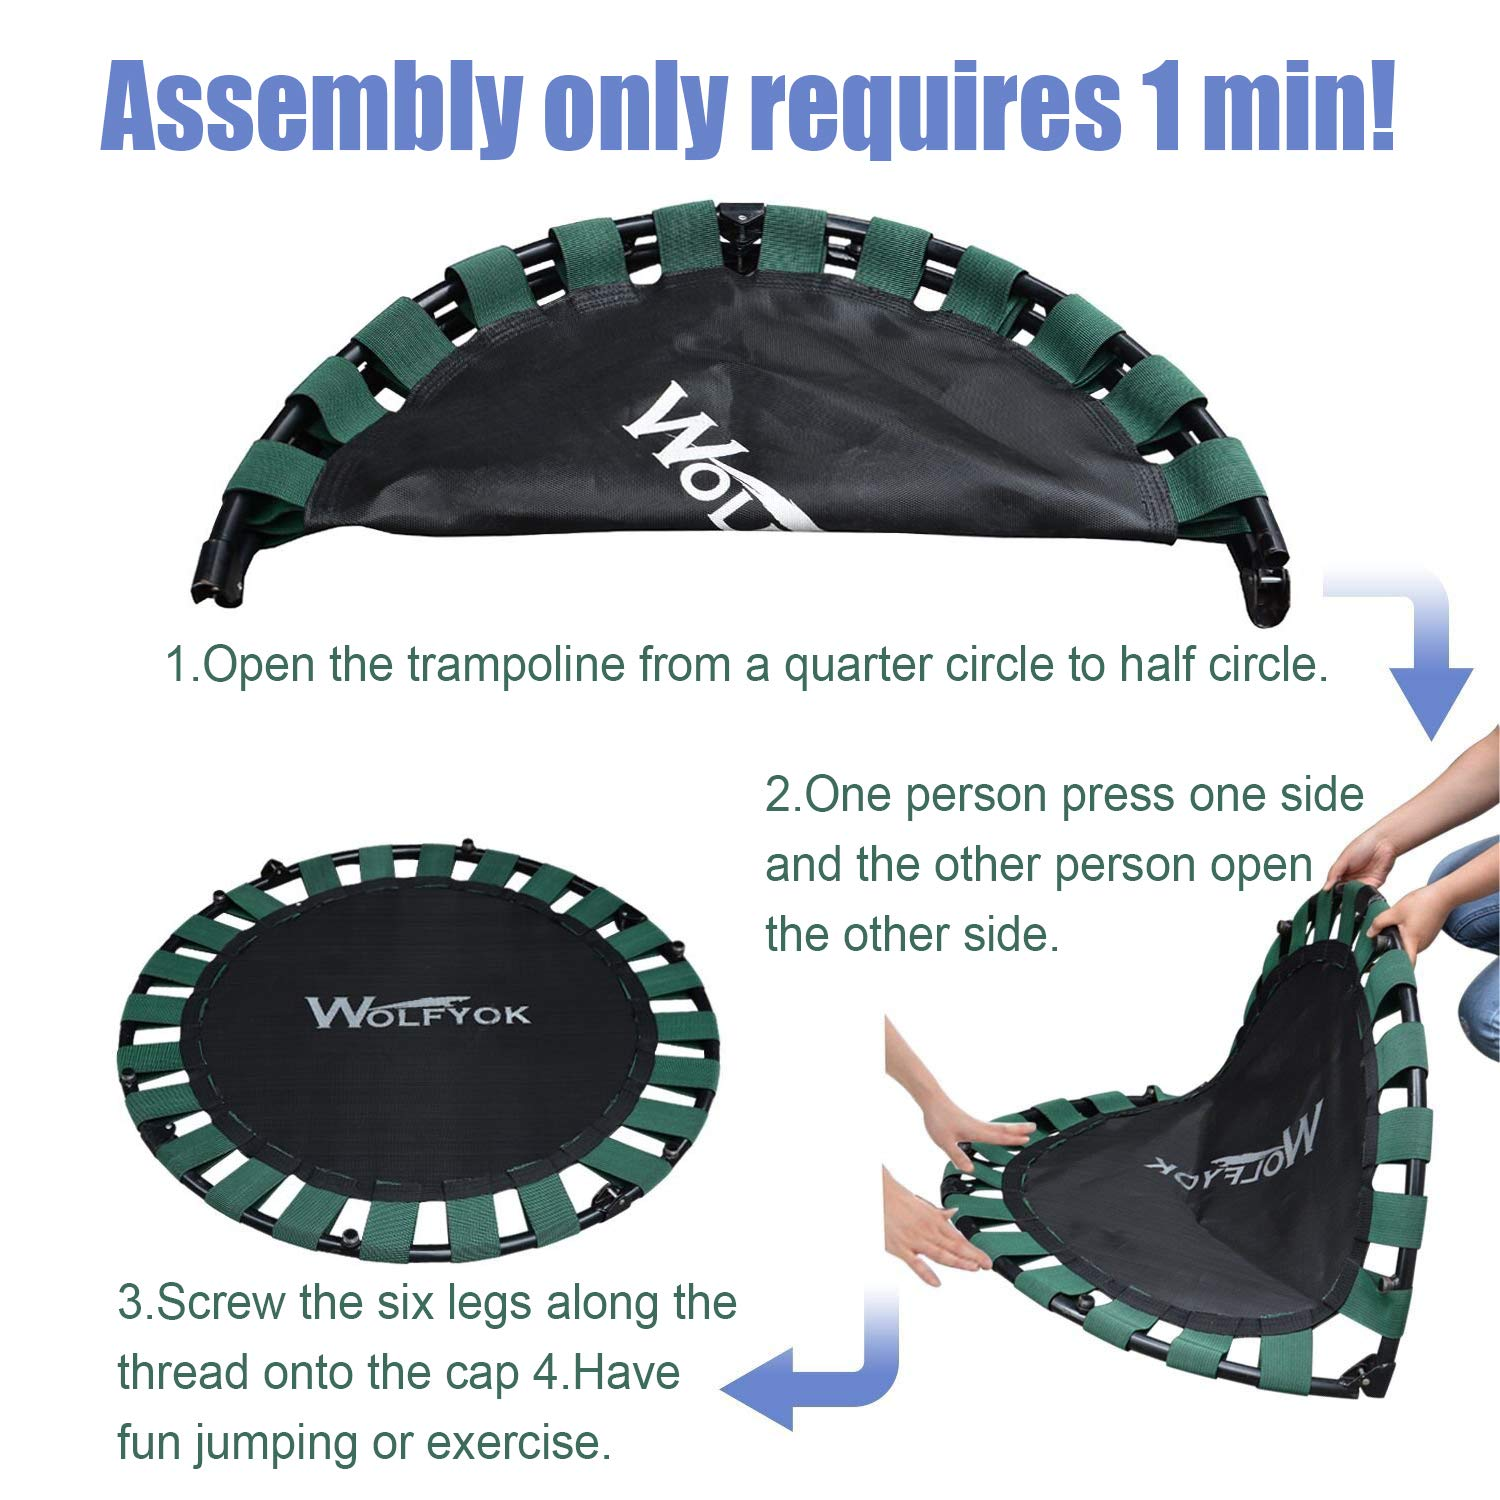 Wolfyok Exercise Trampoline with Safety Pad Adjustable Handle Bar Portable & Foldable Rebounder for Adults Kids Body Fitness Training Workout Max Load 220 lbs Black by Wolfyok (Image #5)